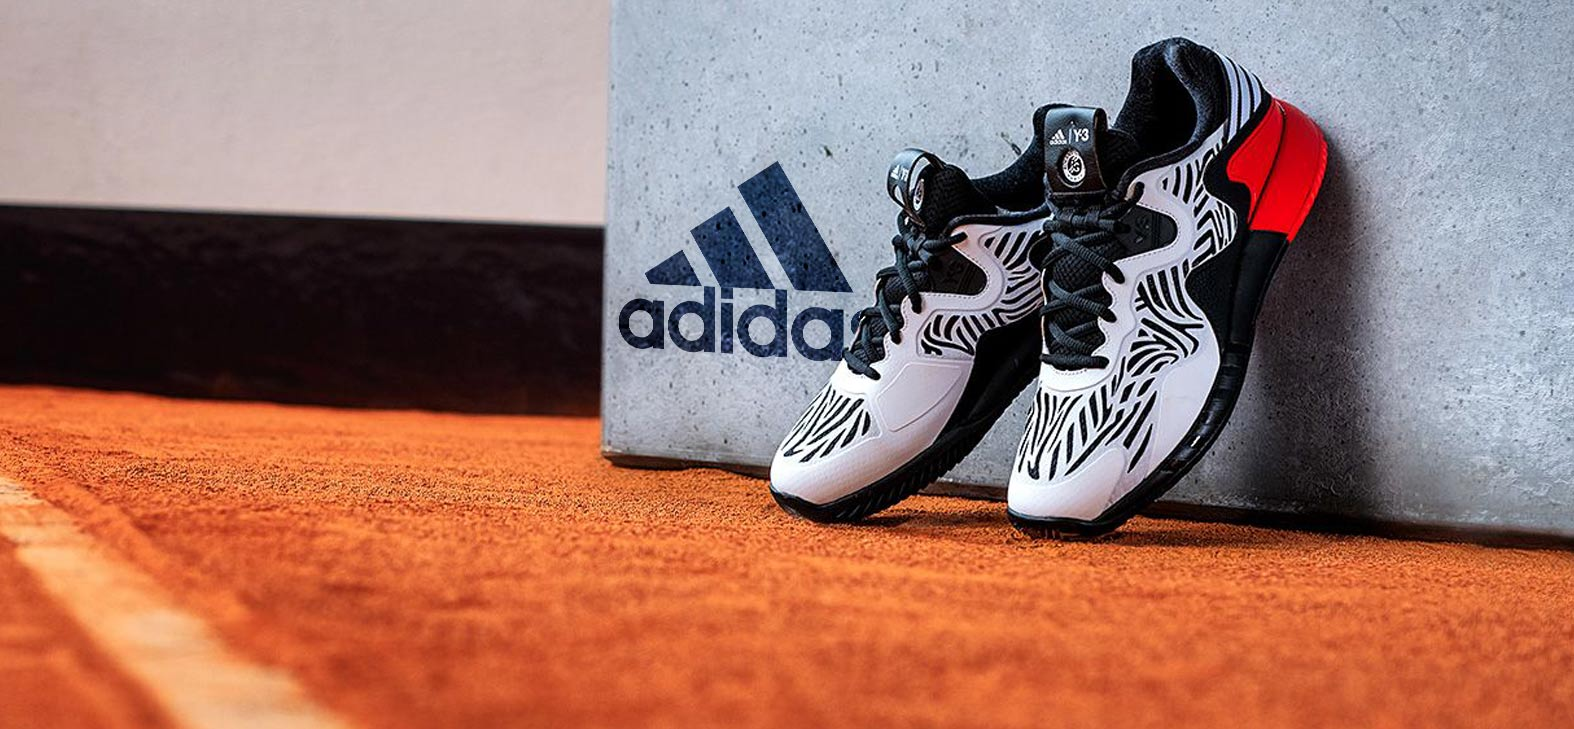 adidas distribution Adidas wrestling canada mens womens kids adidas combat speed 4   takedown distribution is an official licensed retailer for adidas wrestling gear  in.